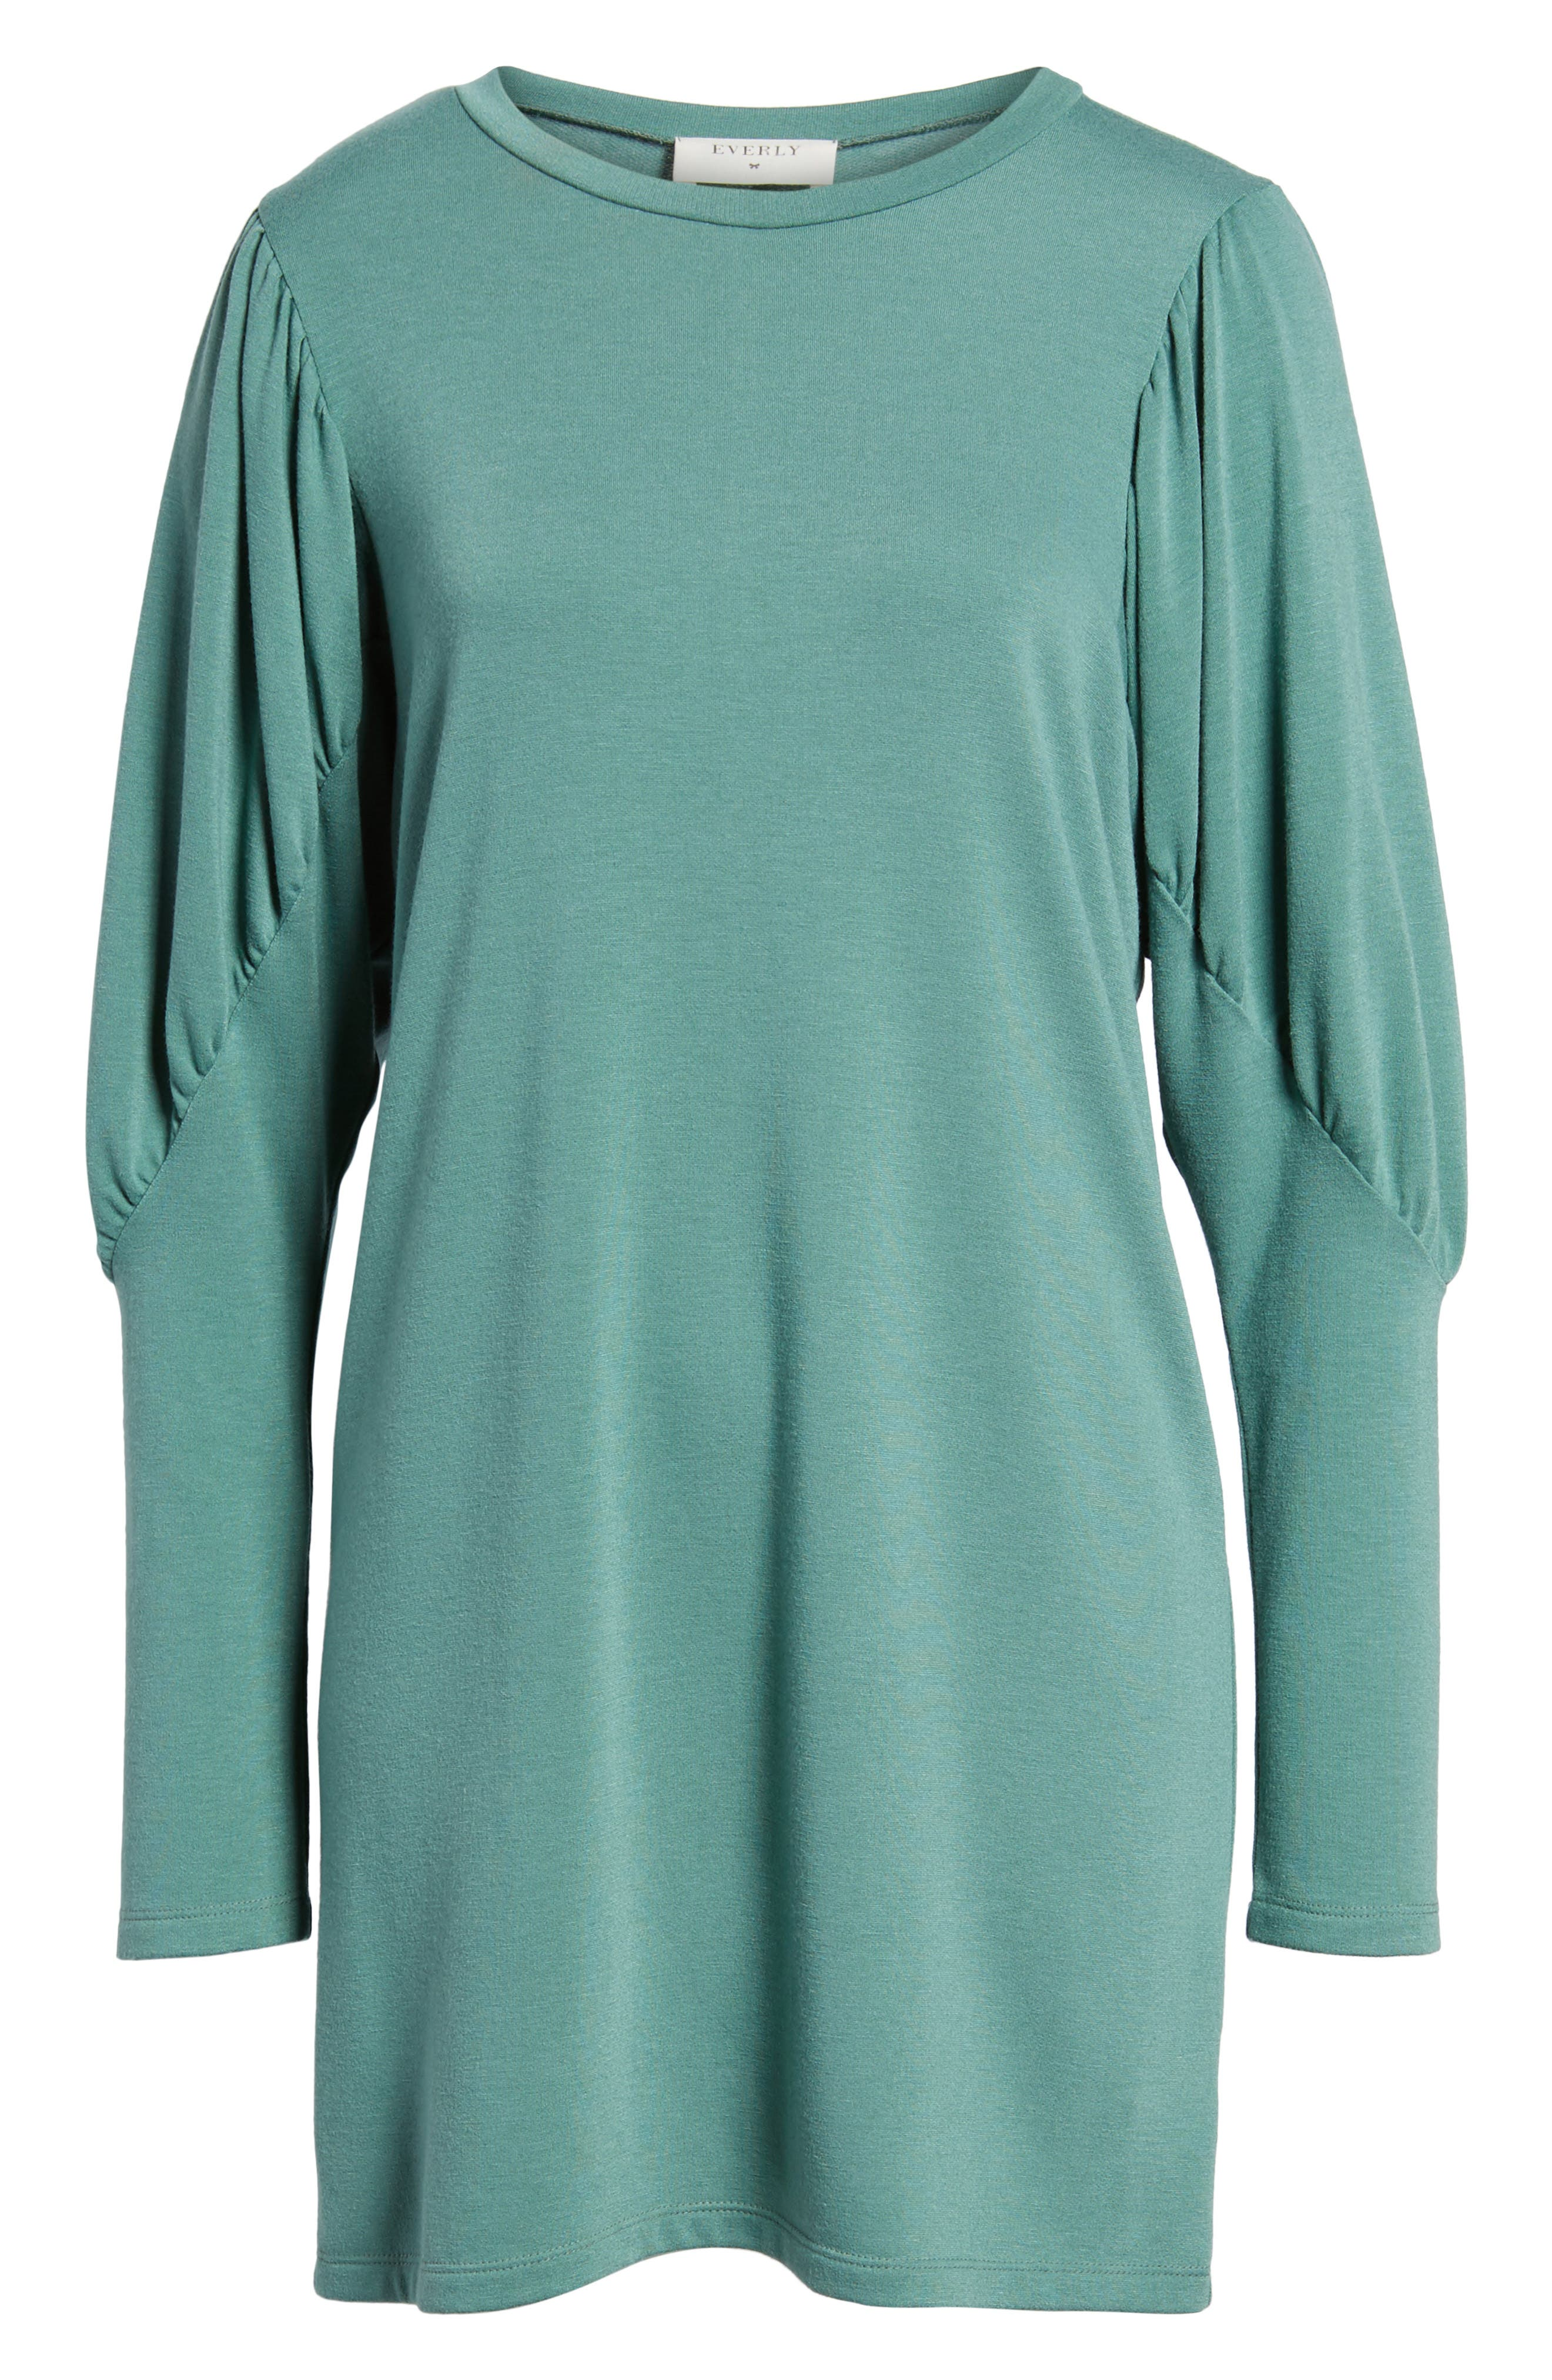 Main Image - Everly Statement Sleeve Sweatshirt Dress